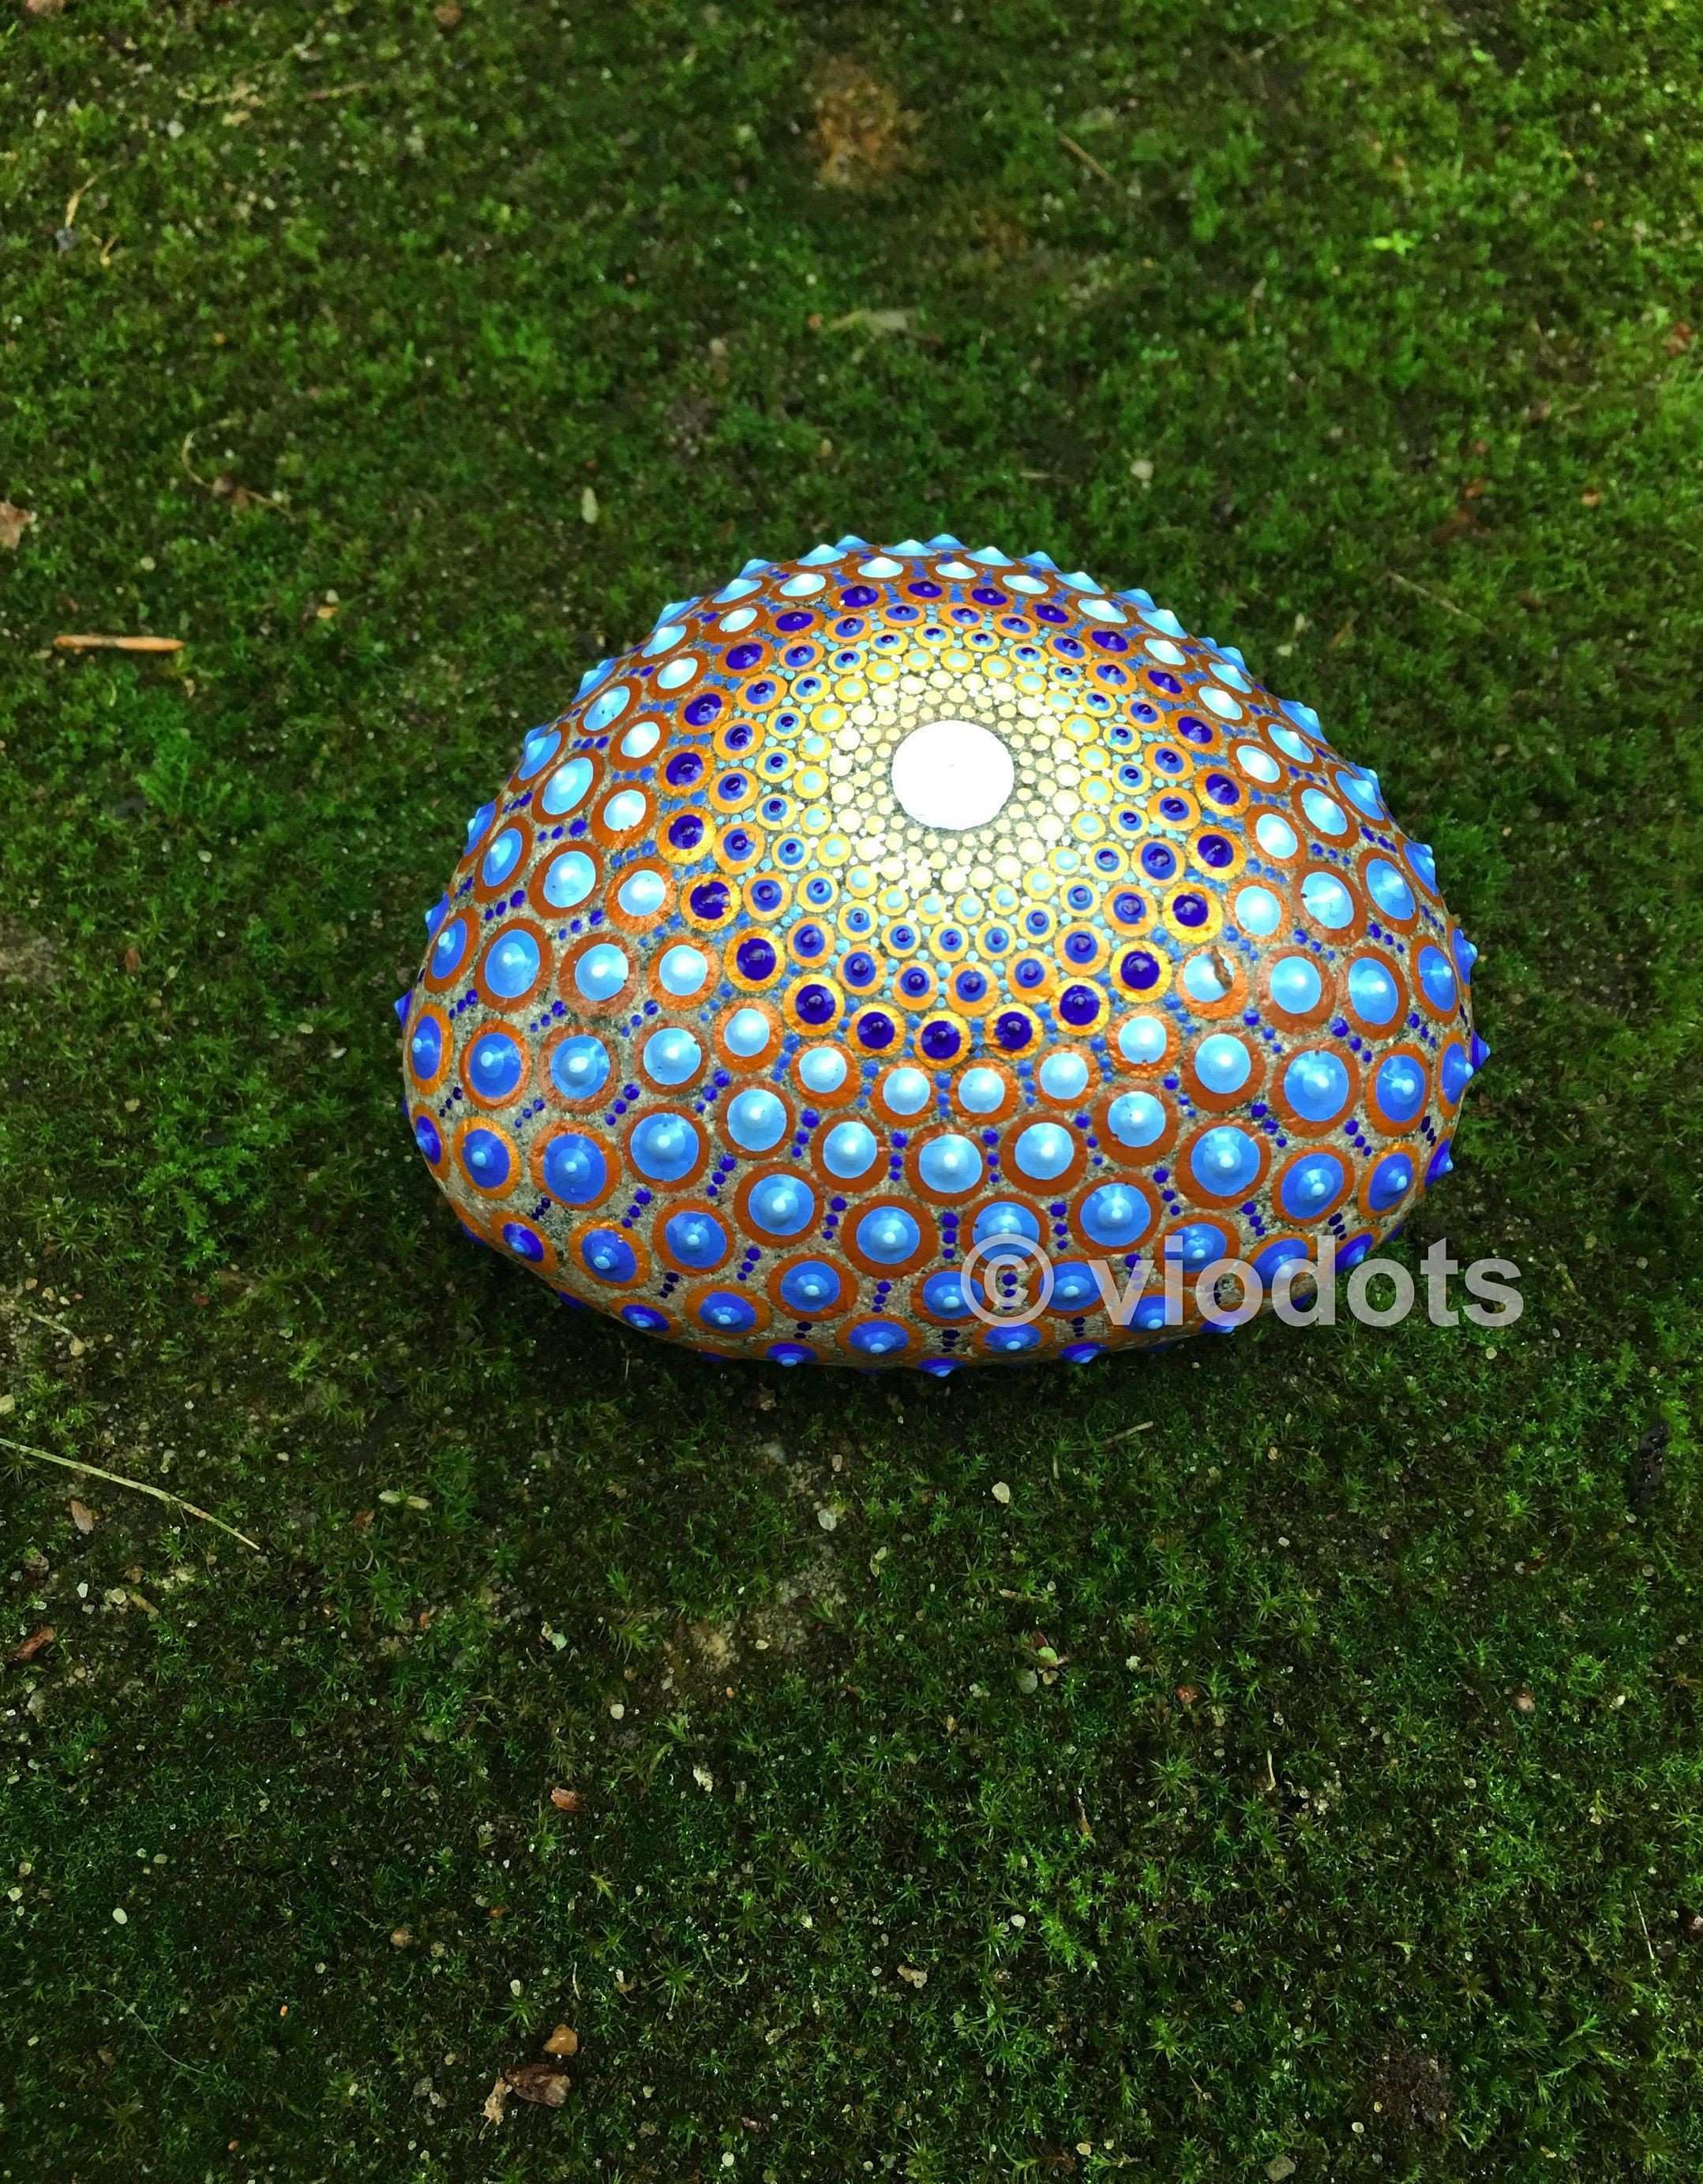 The stone has been created with acrylic paint and protected with